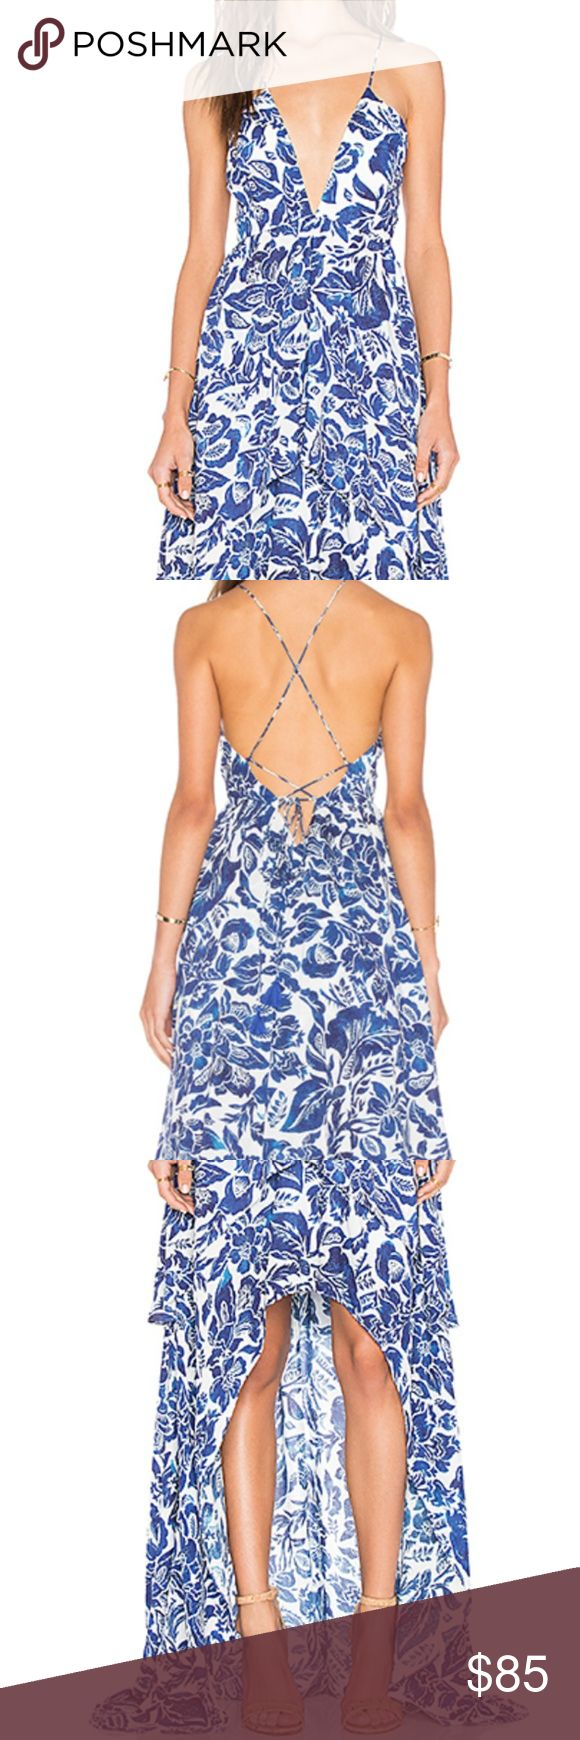 """Jet Set Diaries Indigo Jungle Maxi Dress L Gorgeous blue and white floral maxi dress from Jet Set diaries is perfect for all your luxe destinations. This dress is partially lined and has a zip closure. Straps are adjustable. It has tiered layers and an adjustable hem. Neckline to shortest hem measures approx 30"""" and to longest hem approx 56"""" in length. Dress has only been worn once and is in excellent condition! The Jetset Diaries Dresses"""